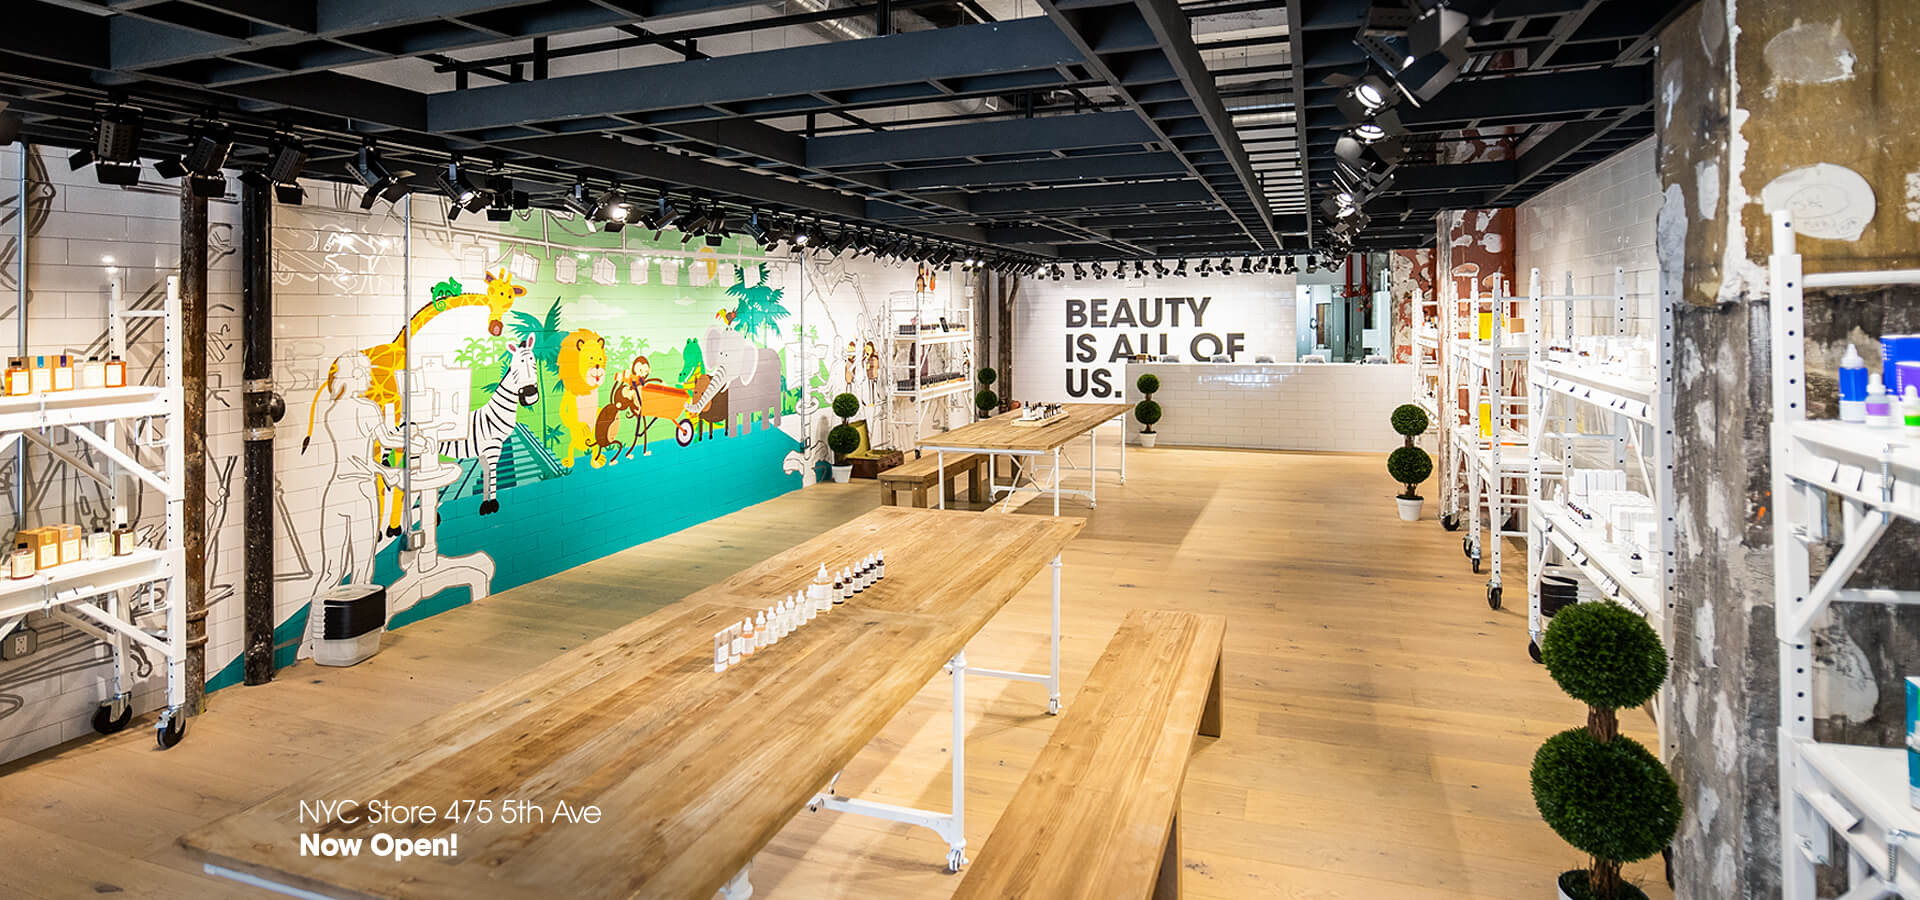 yorkdale hardwood flooring centre ontario of deciem the abnormal beauty company in nyc 5th ave